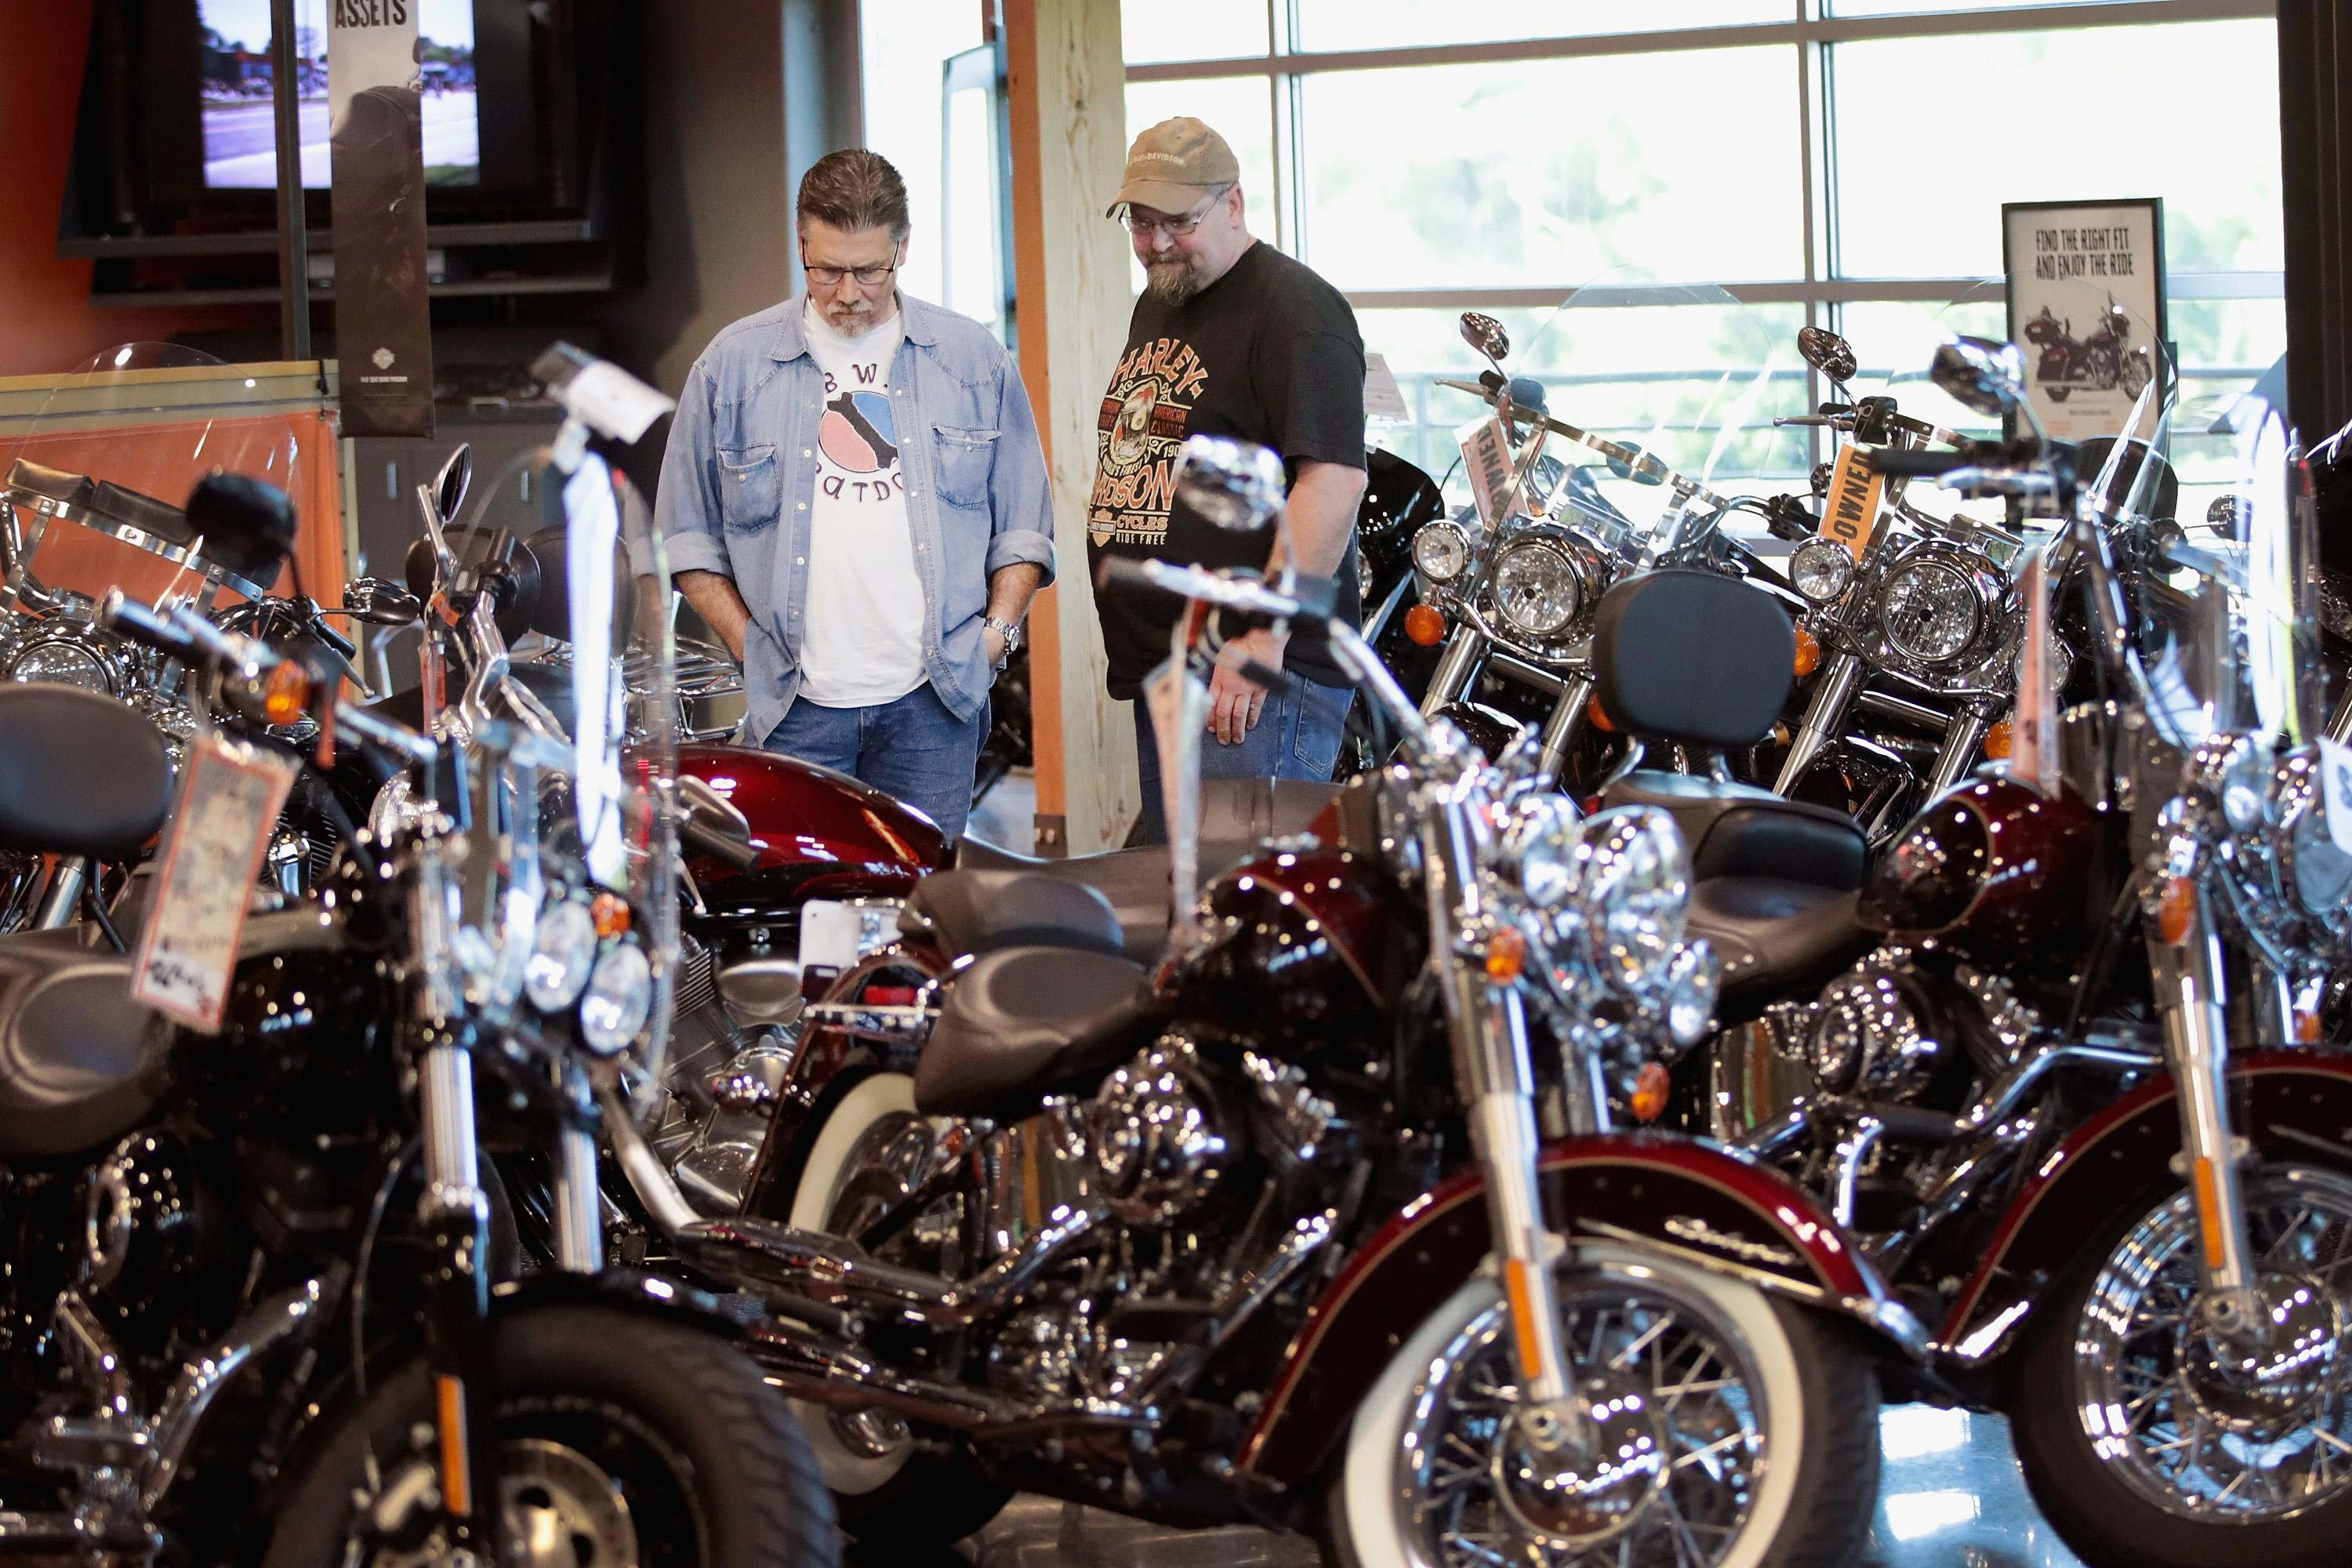 Harley Davidson: Harley-Davidson Is Moving Some Production Overseas To Deal